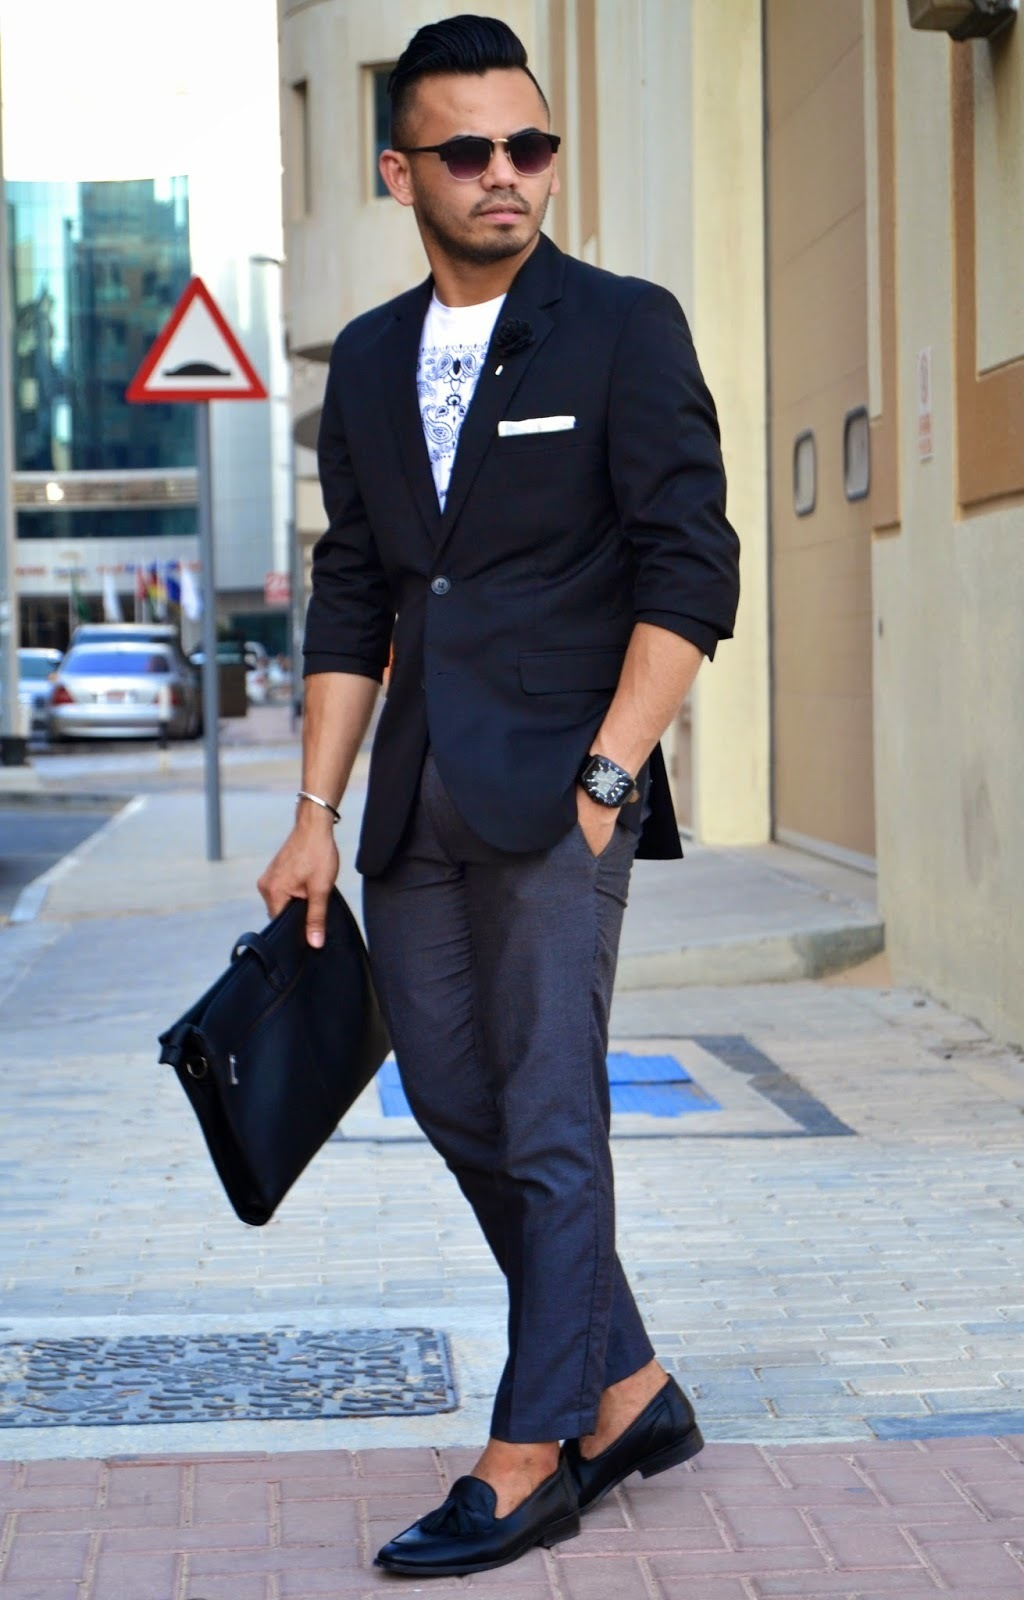 Black t shirt with suit - This Combination Of A Black Sport Coat And Dark Grey Dress Pants Oozes Masculinity And Refined